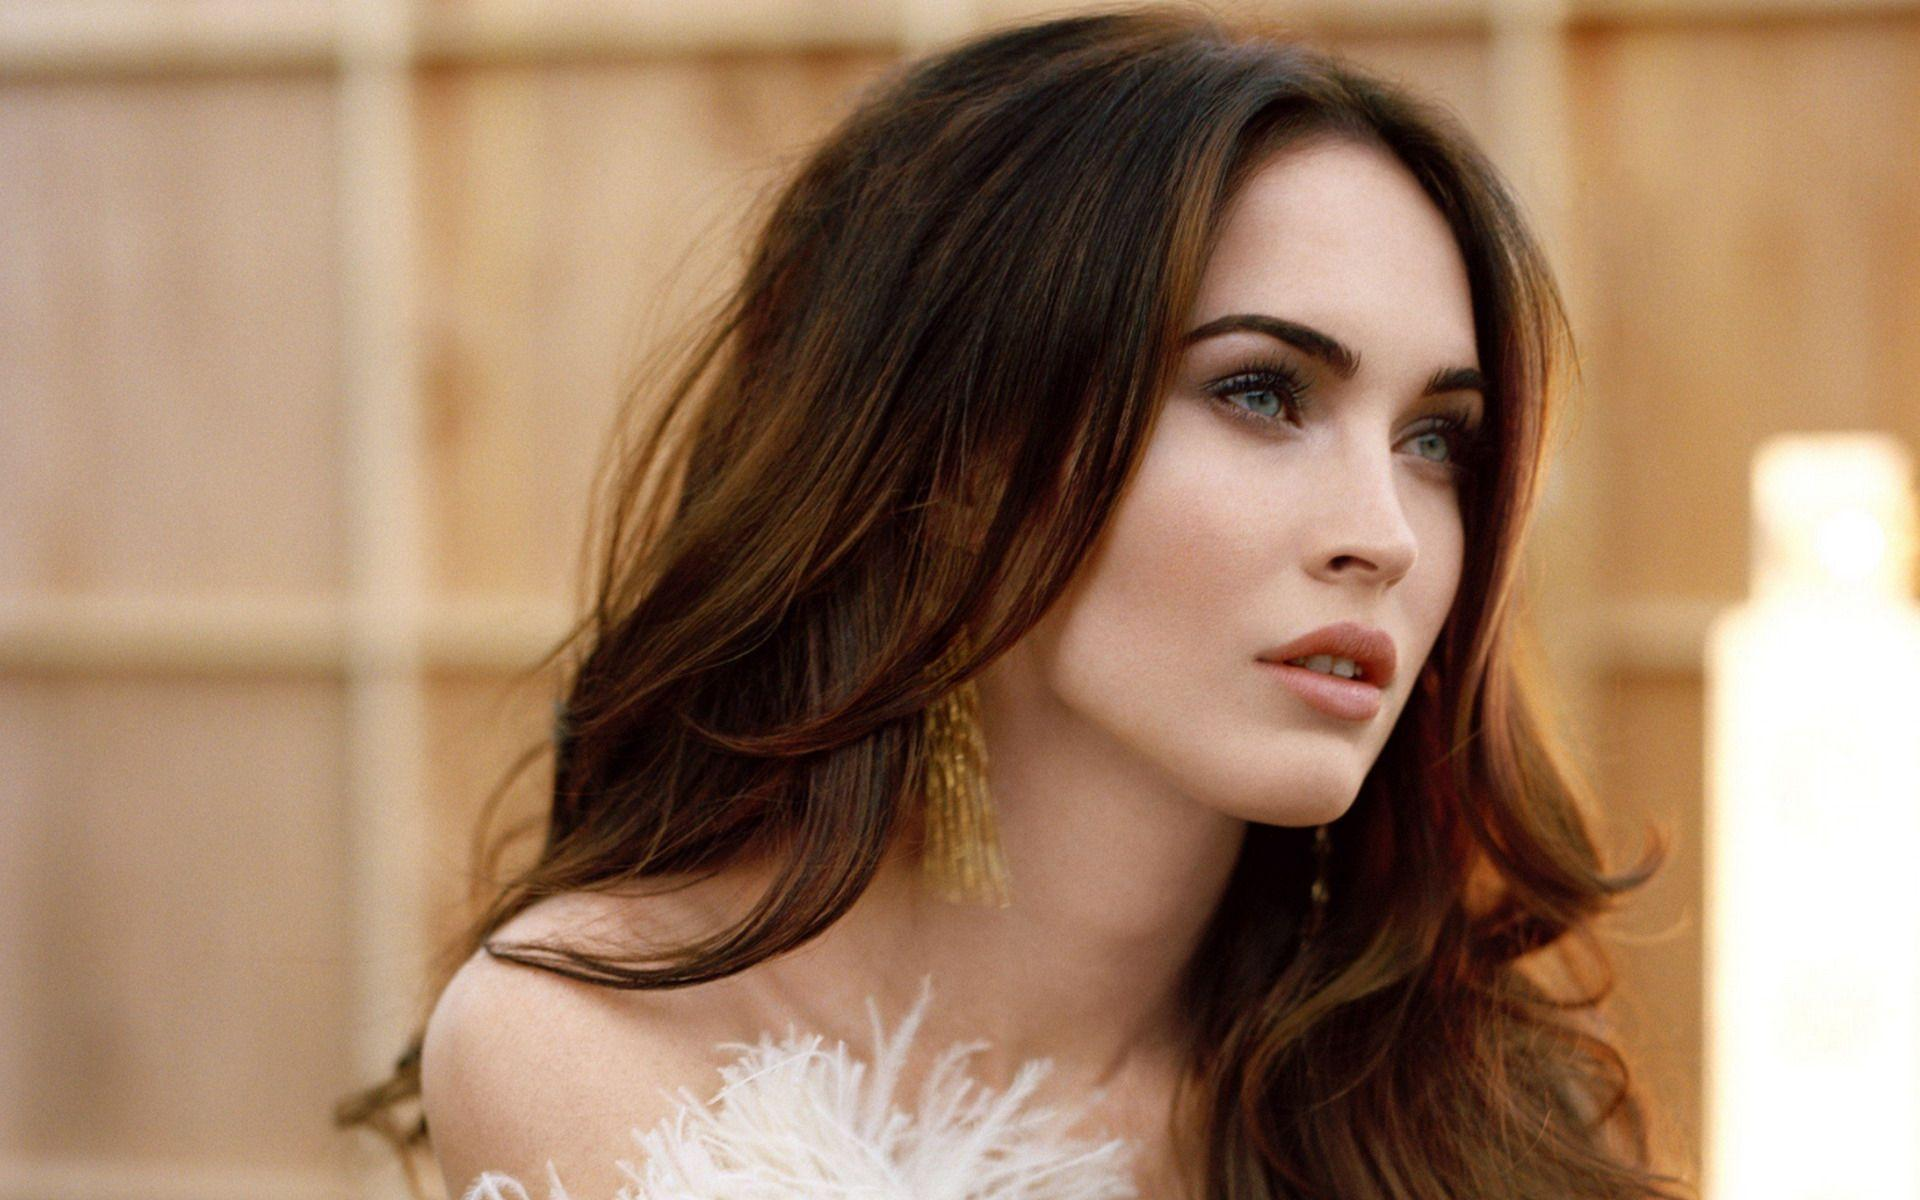 Megan Fox Wallpaper Widescreen 1920x1200PX ~ Wallpaper Megan Fox ...